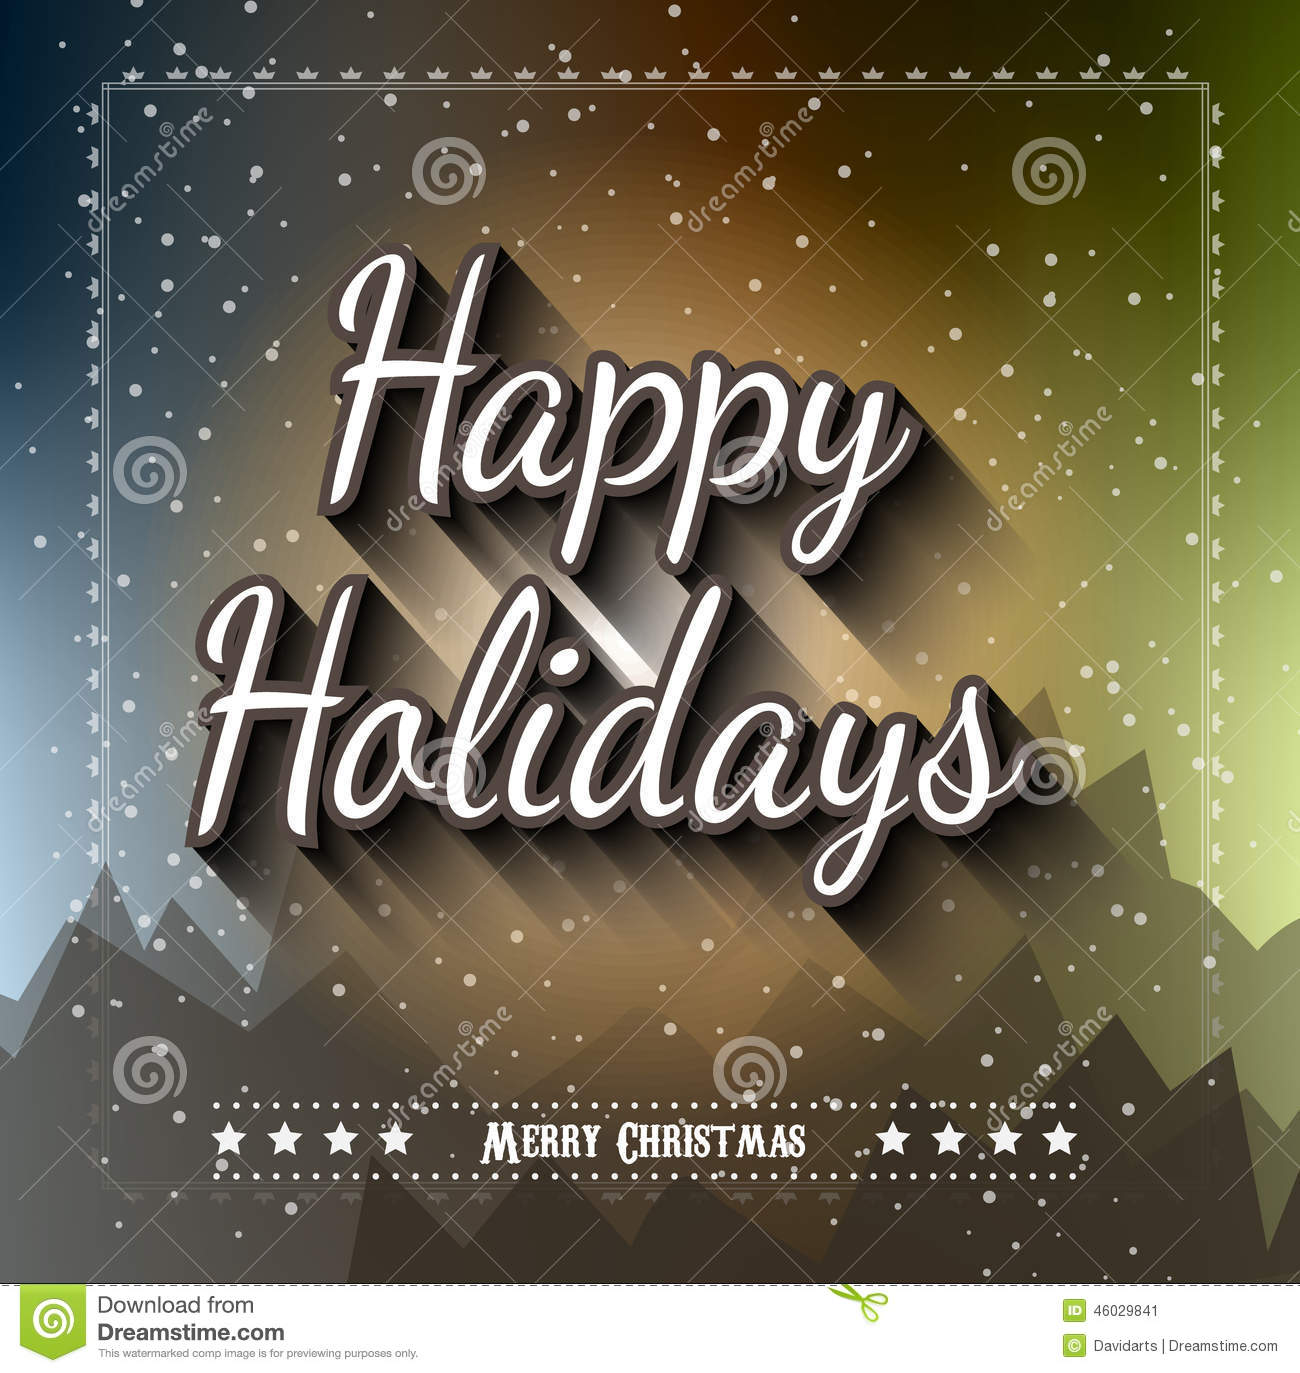 Christmas Greeting Card For Happy Holiday Flyers Stock